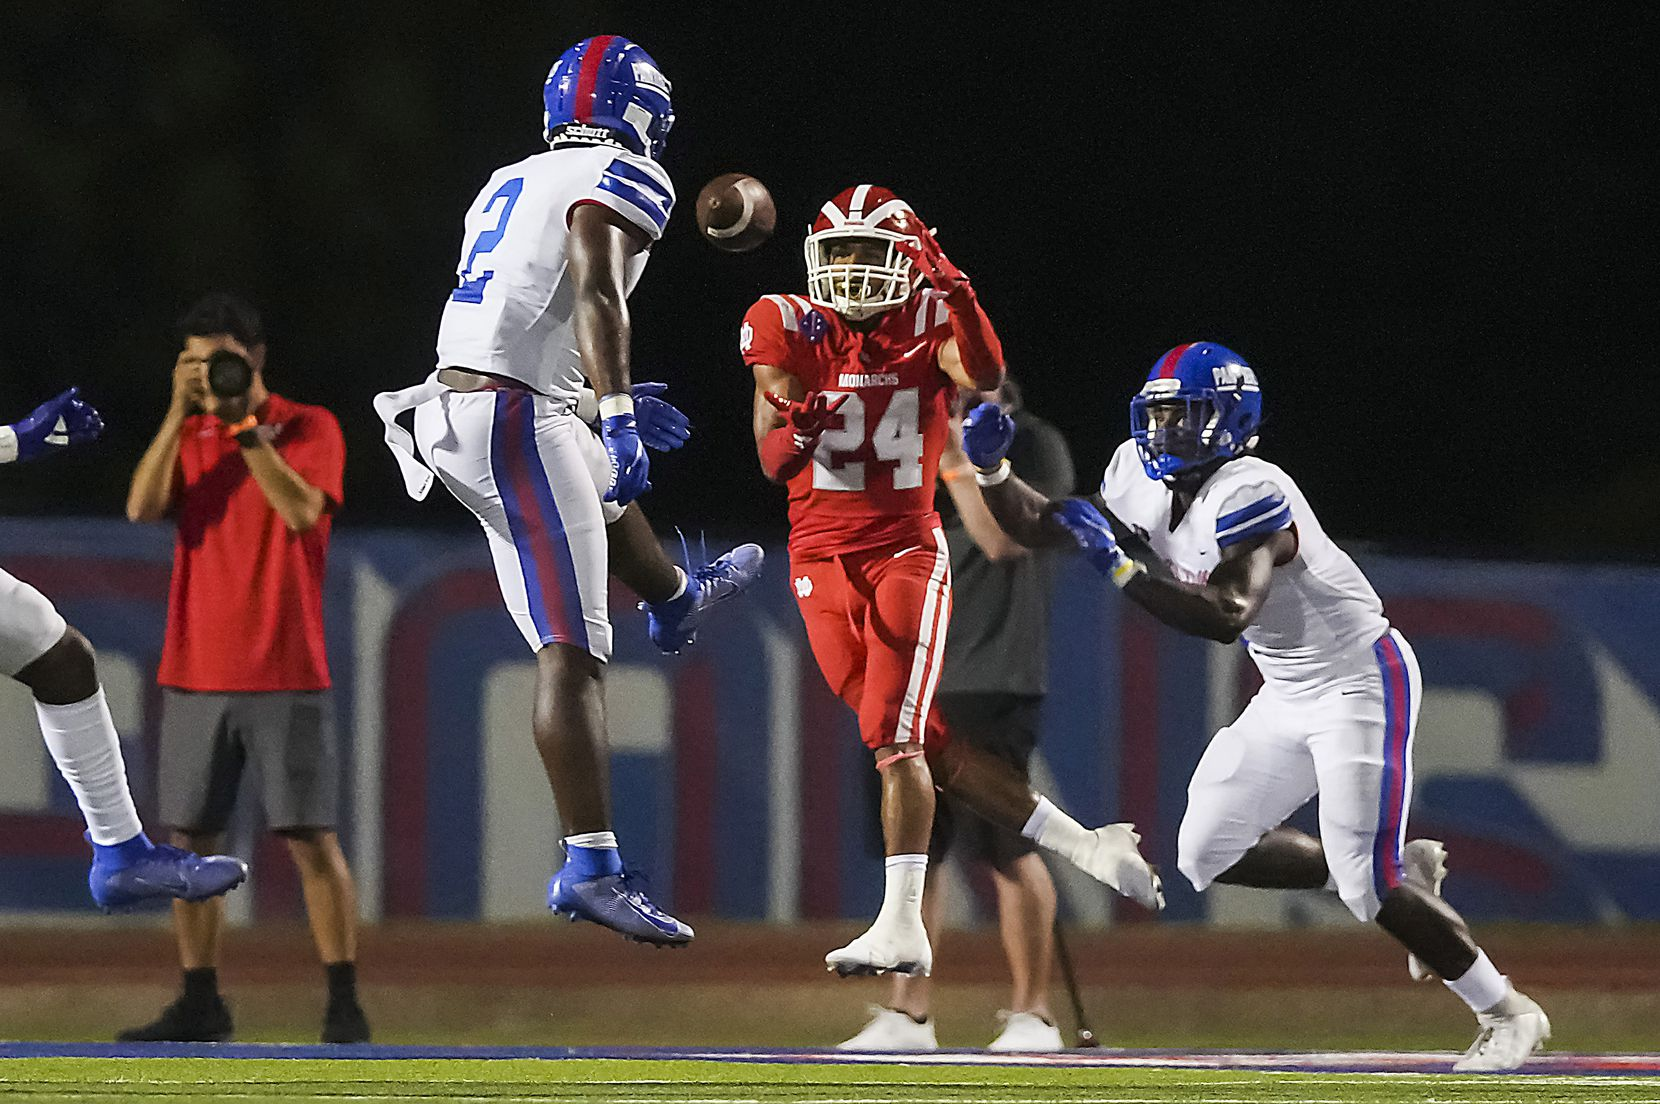 Mater Dei's Quincy Craig (24) hauls in a touchdown pass between Duncanville linebacker Jordan Crook (2) and defensive back Pierre Goree (7) during the first half of a high school football game on Friday, Aug. 27, 2021, in Duncanville. (Smiley N. Pool/The Dallas Morning News)